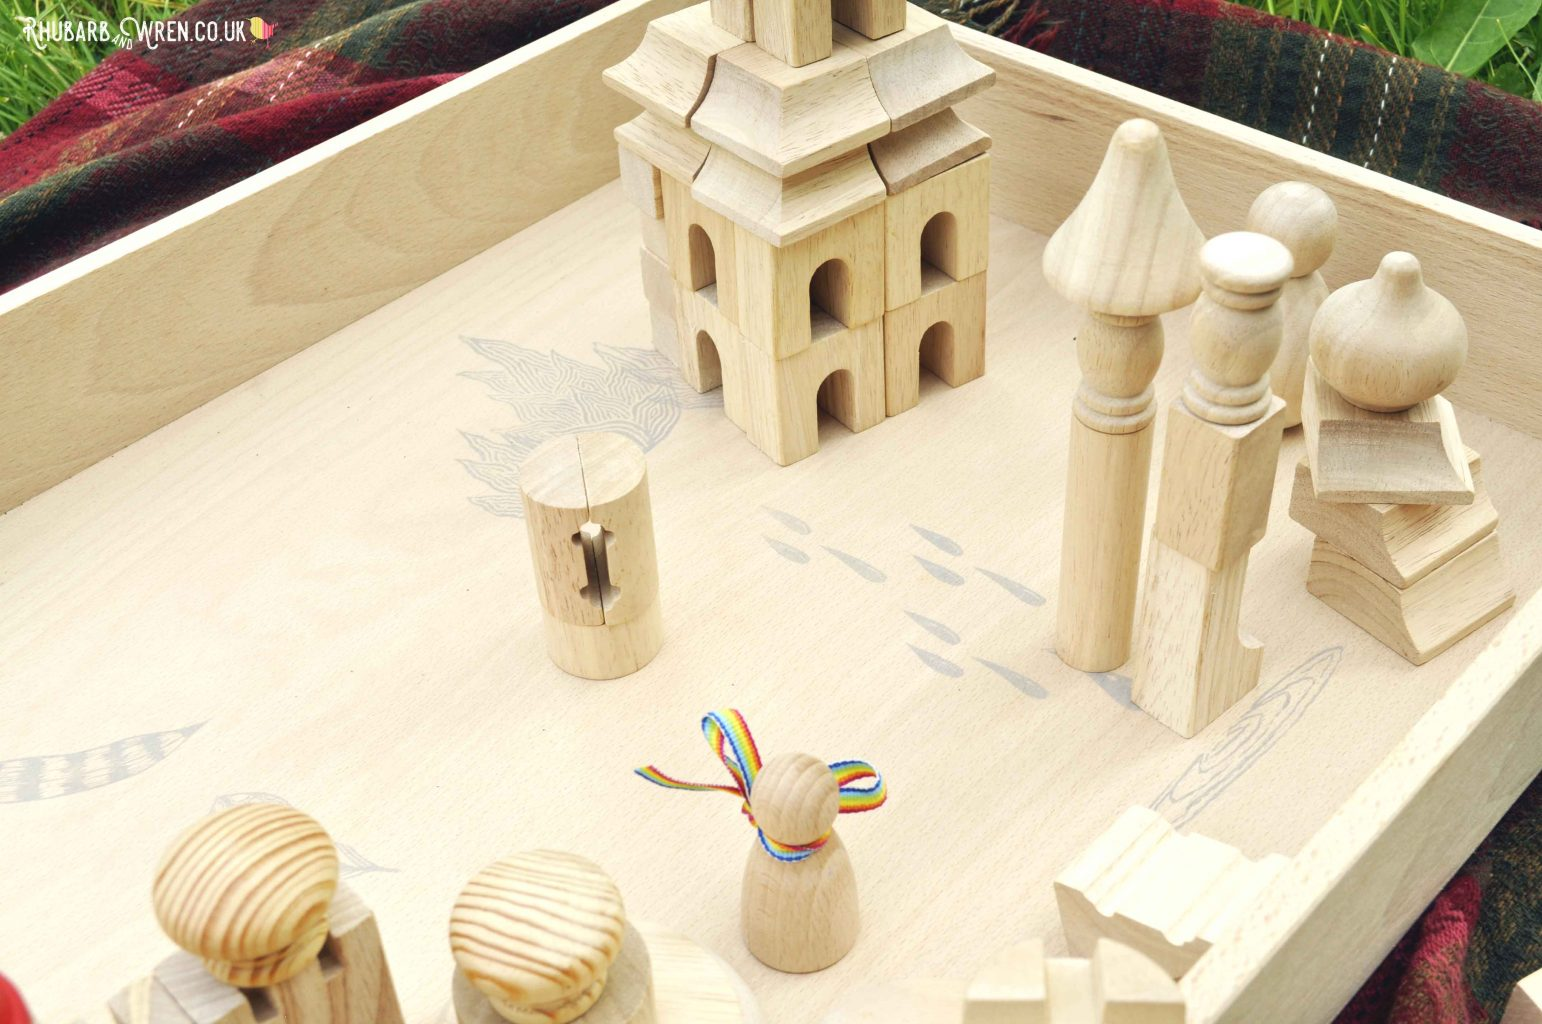 Wooden building blocks in a Grapat free-play box